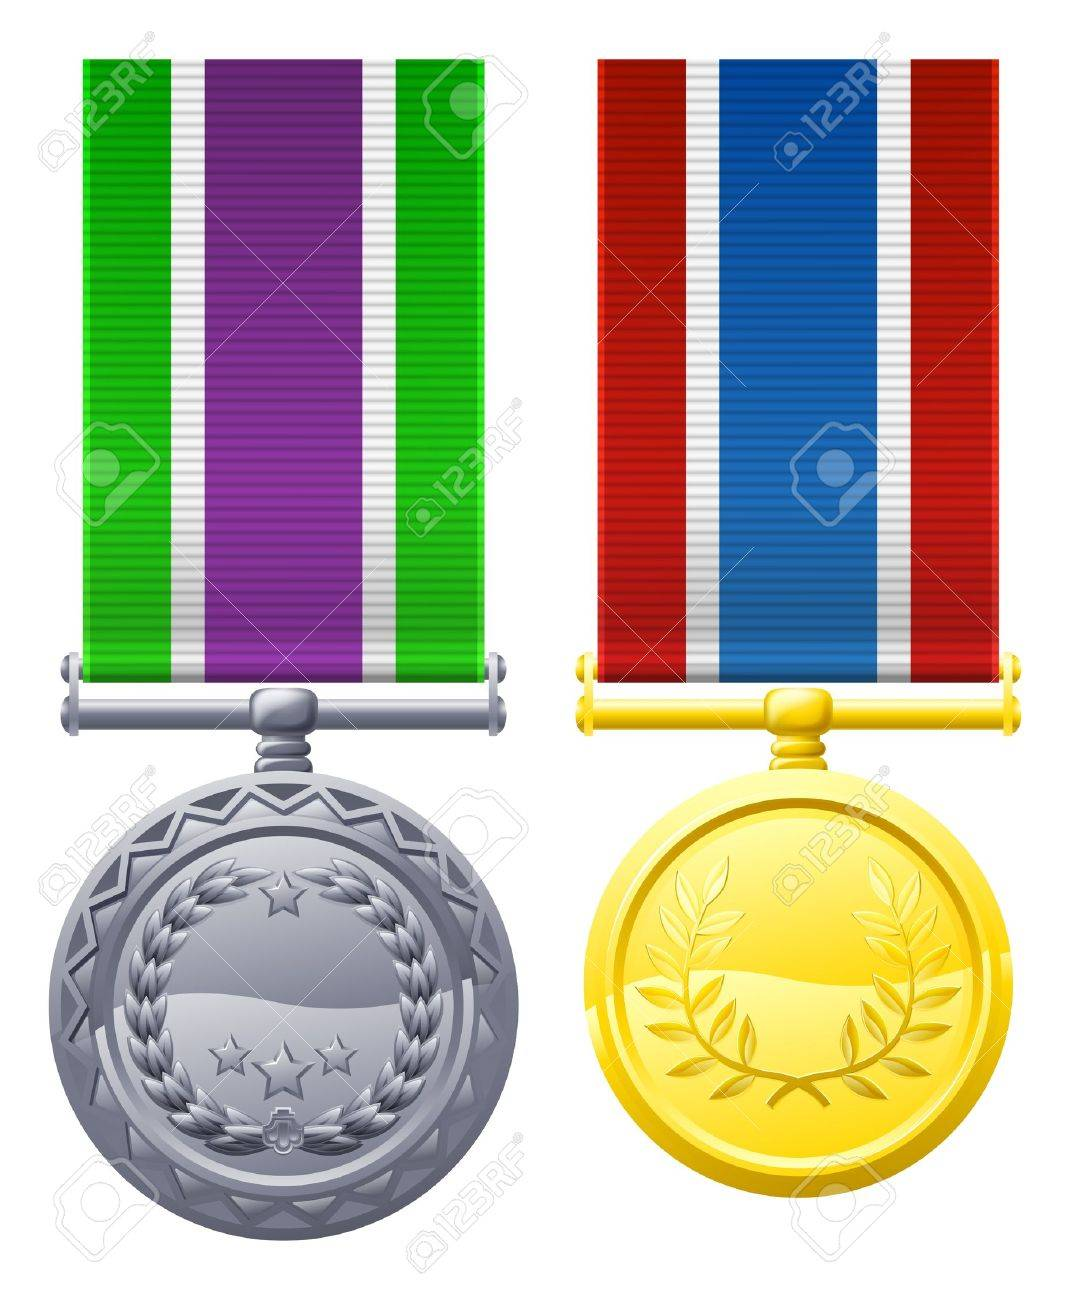 1070x1300 A Drawing Of Two Military Style Chest Medals Or Decorations